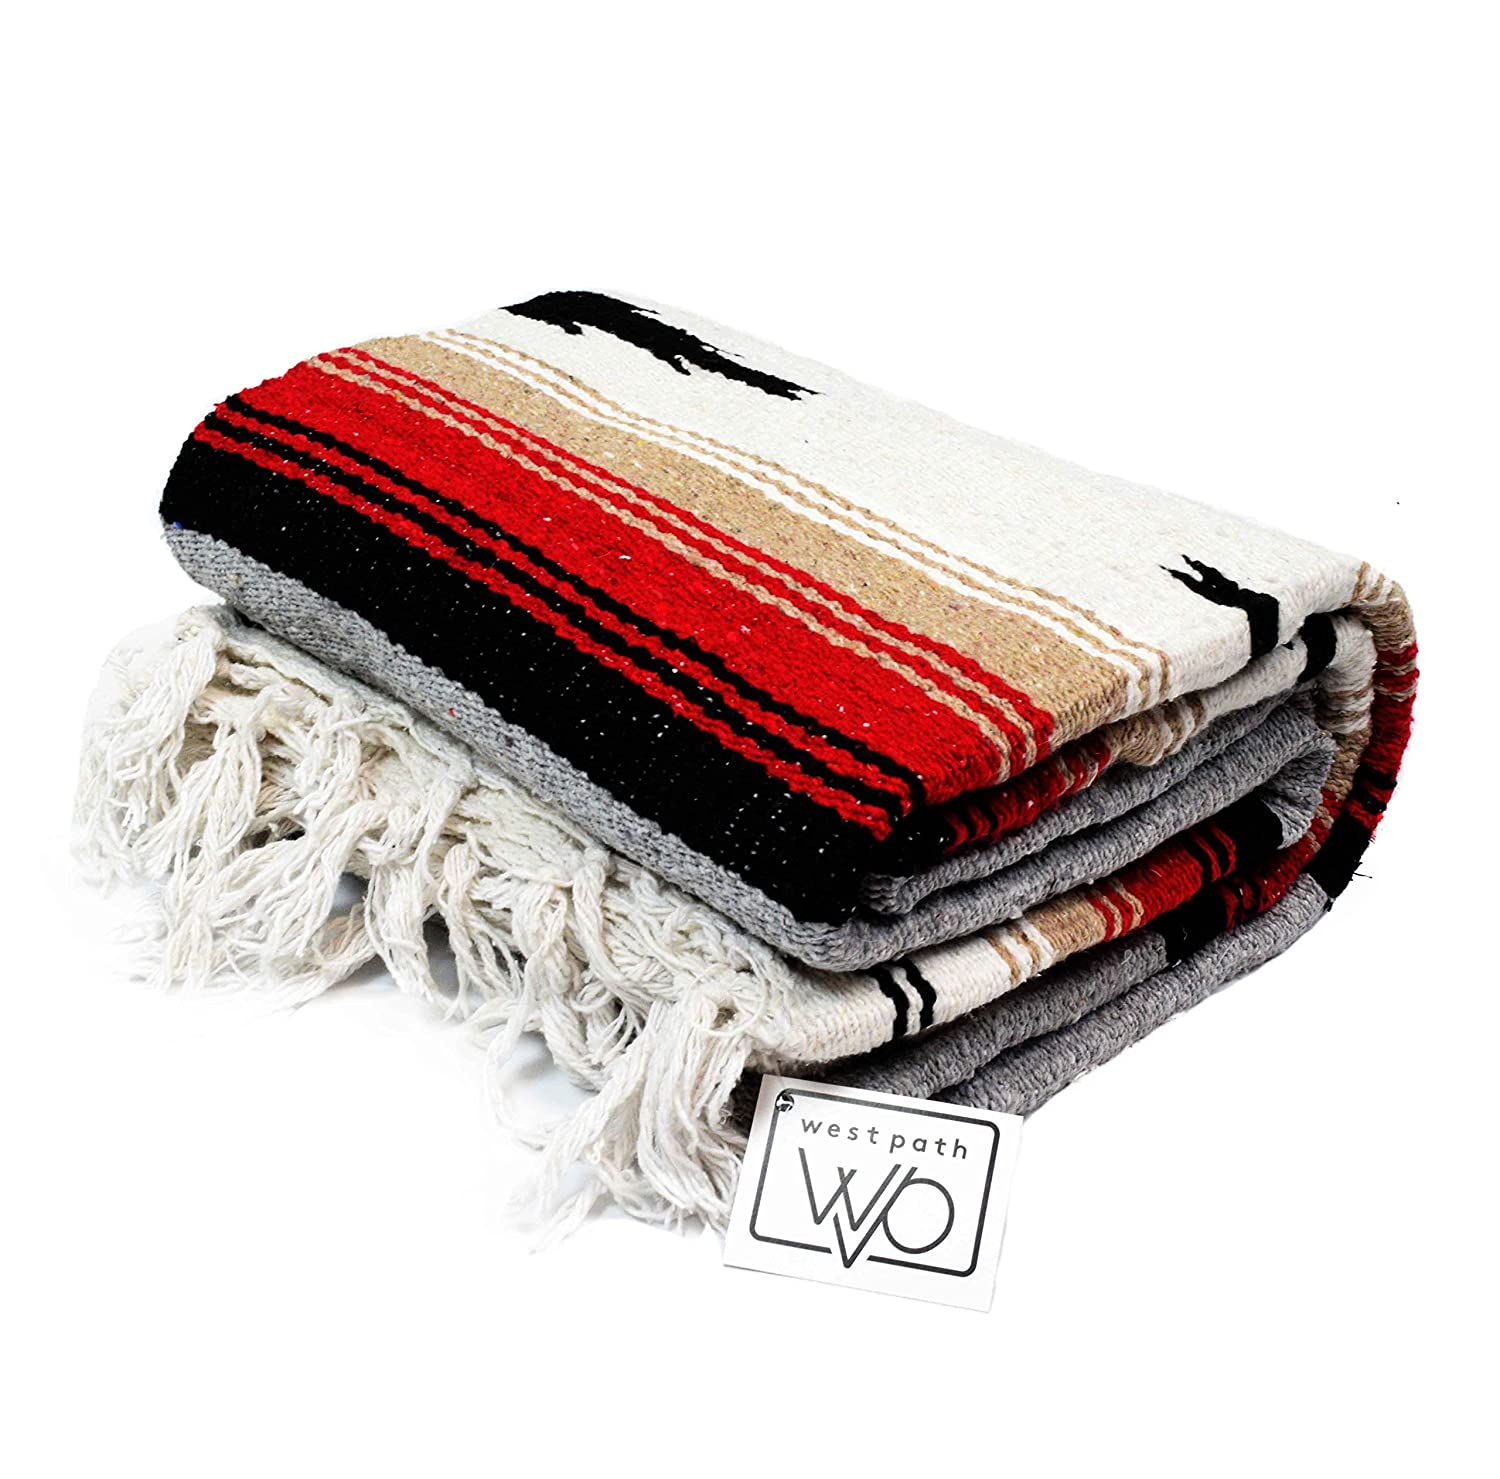 Thick Navajo Diamond Serape with Stripes Open Road Goods Mexican Yoga Blanket